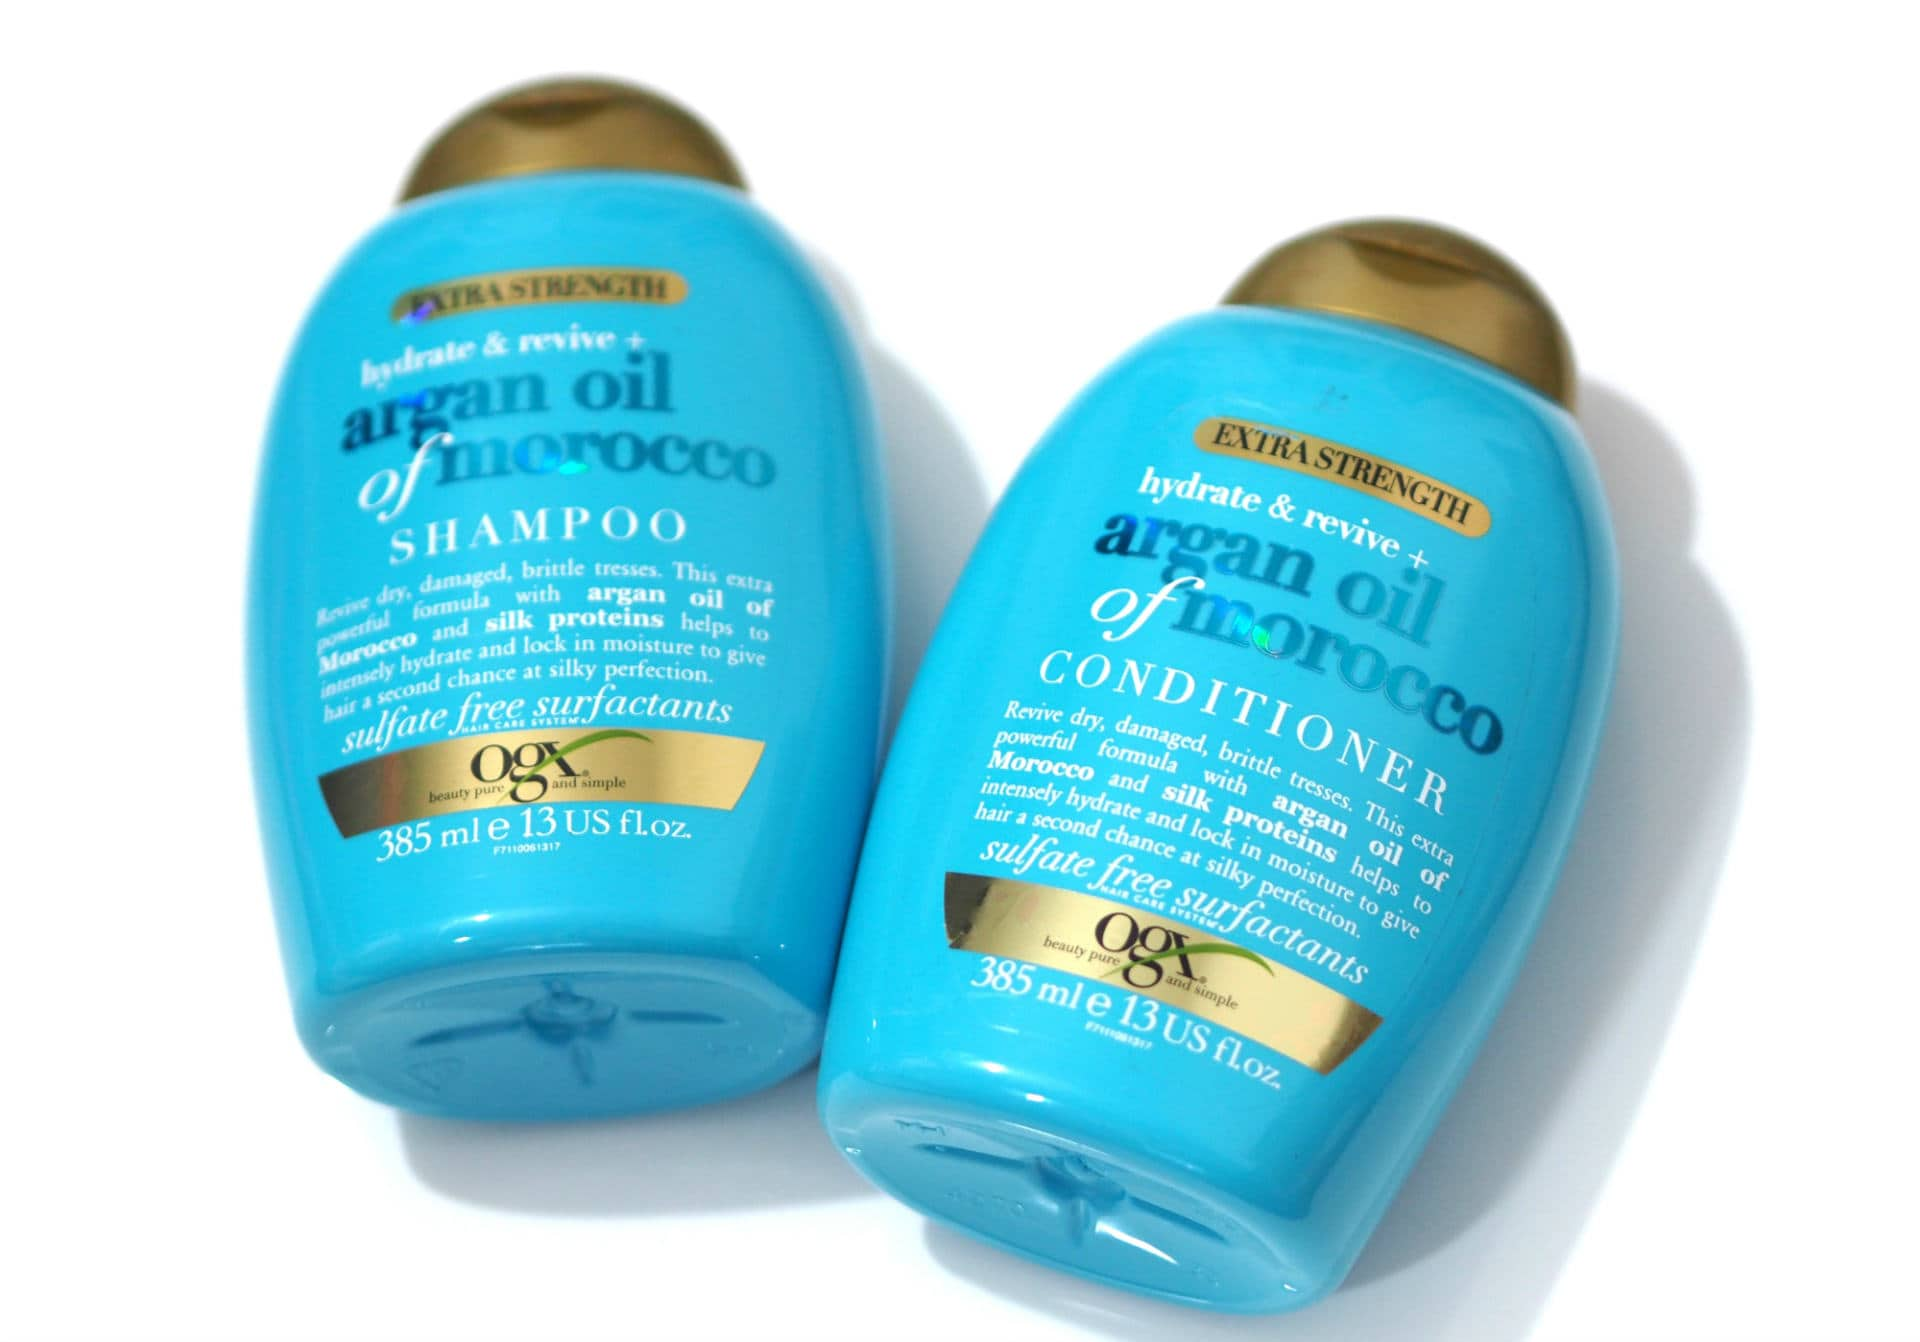 OGX Argan Oil of Morocco Extra Strength Shampoo, Conditioner and Hair Mask